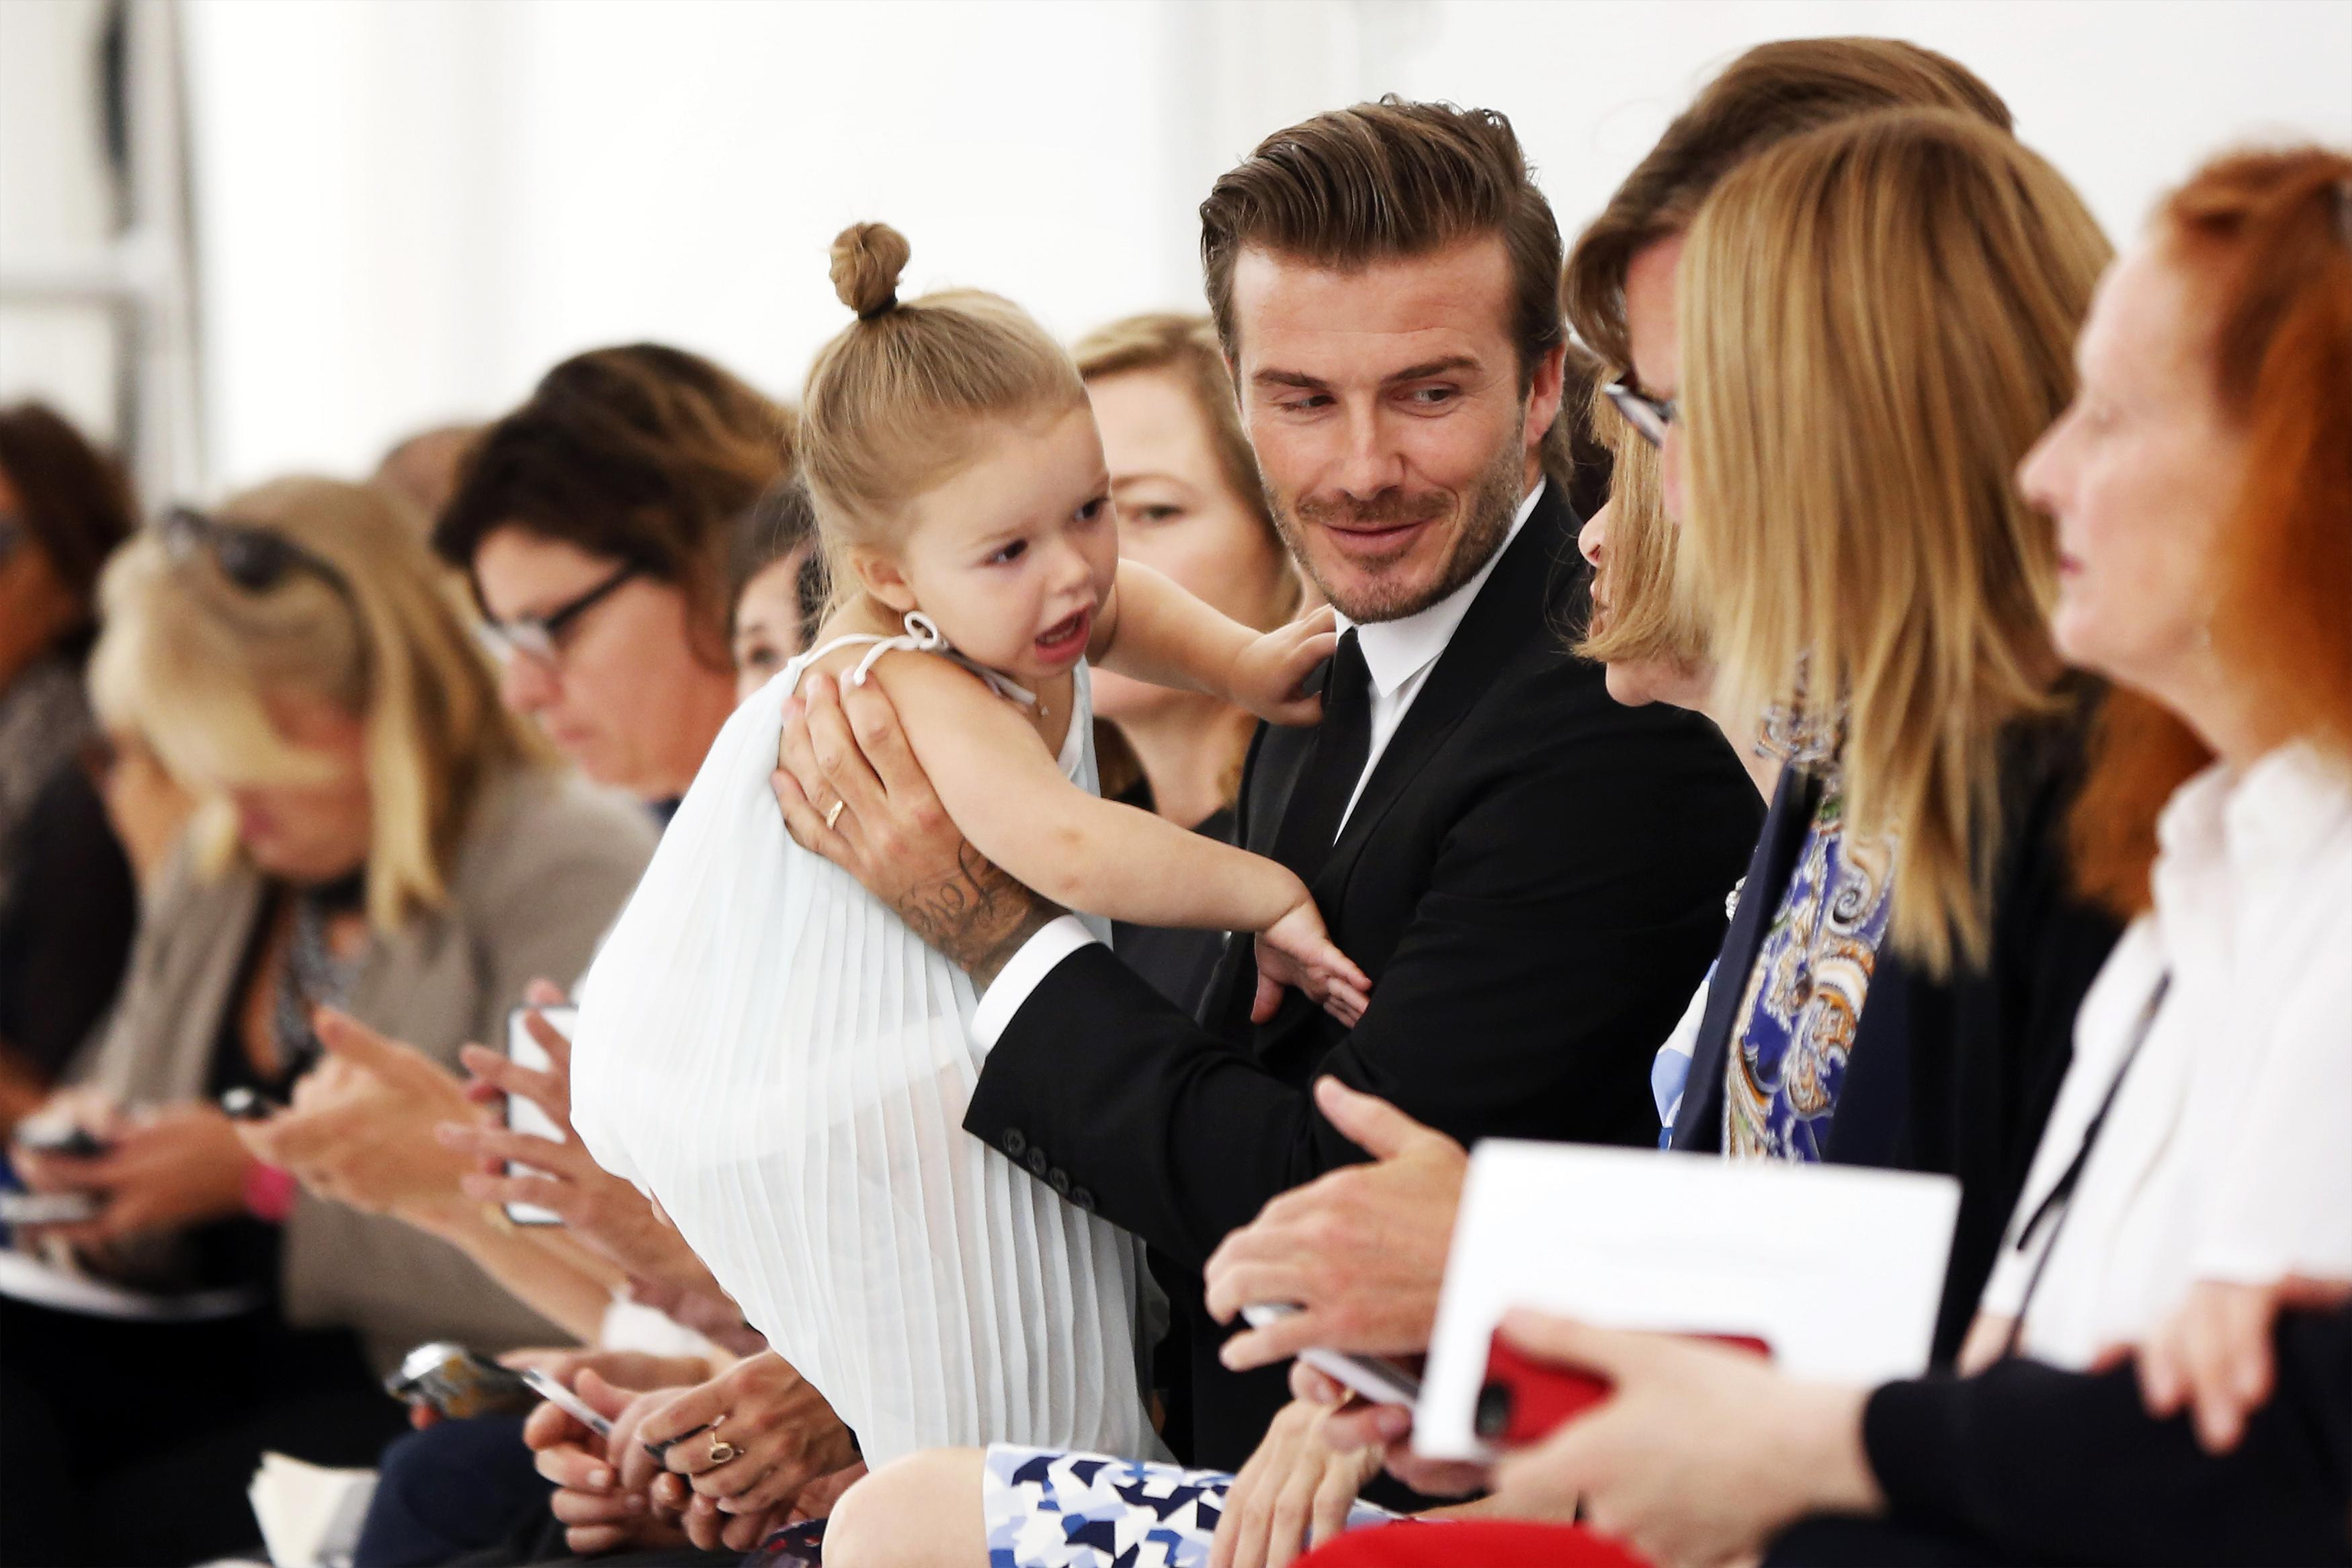 [08:42] Harper Beckham at New York Fashion Week